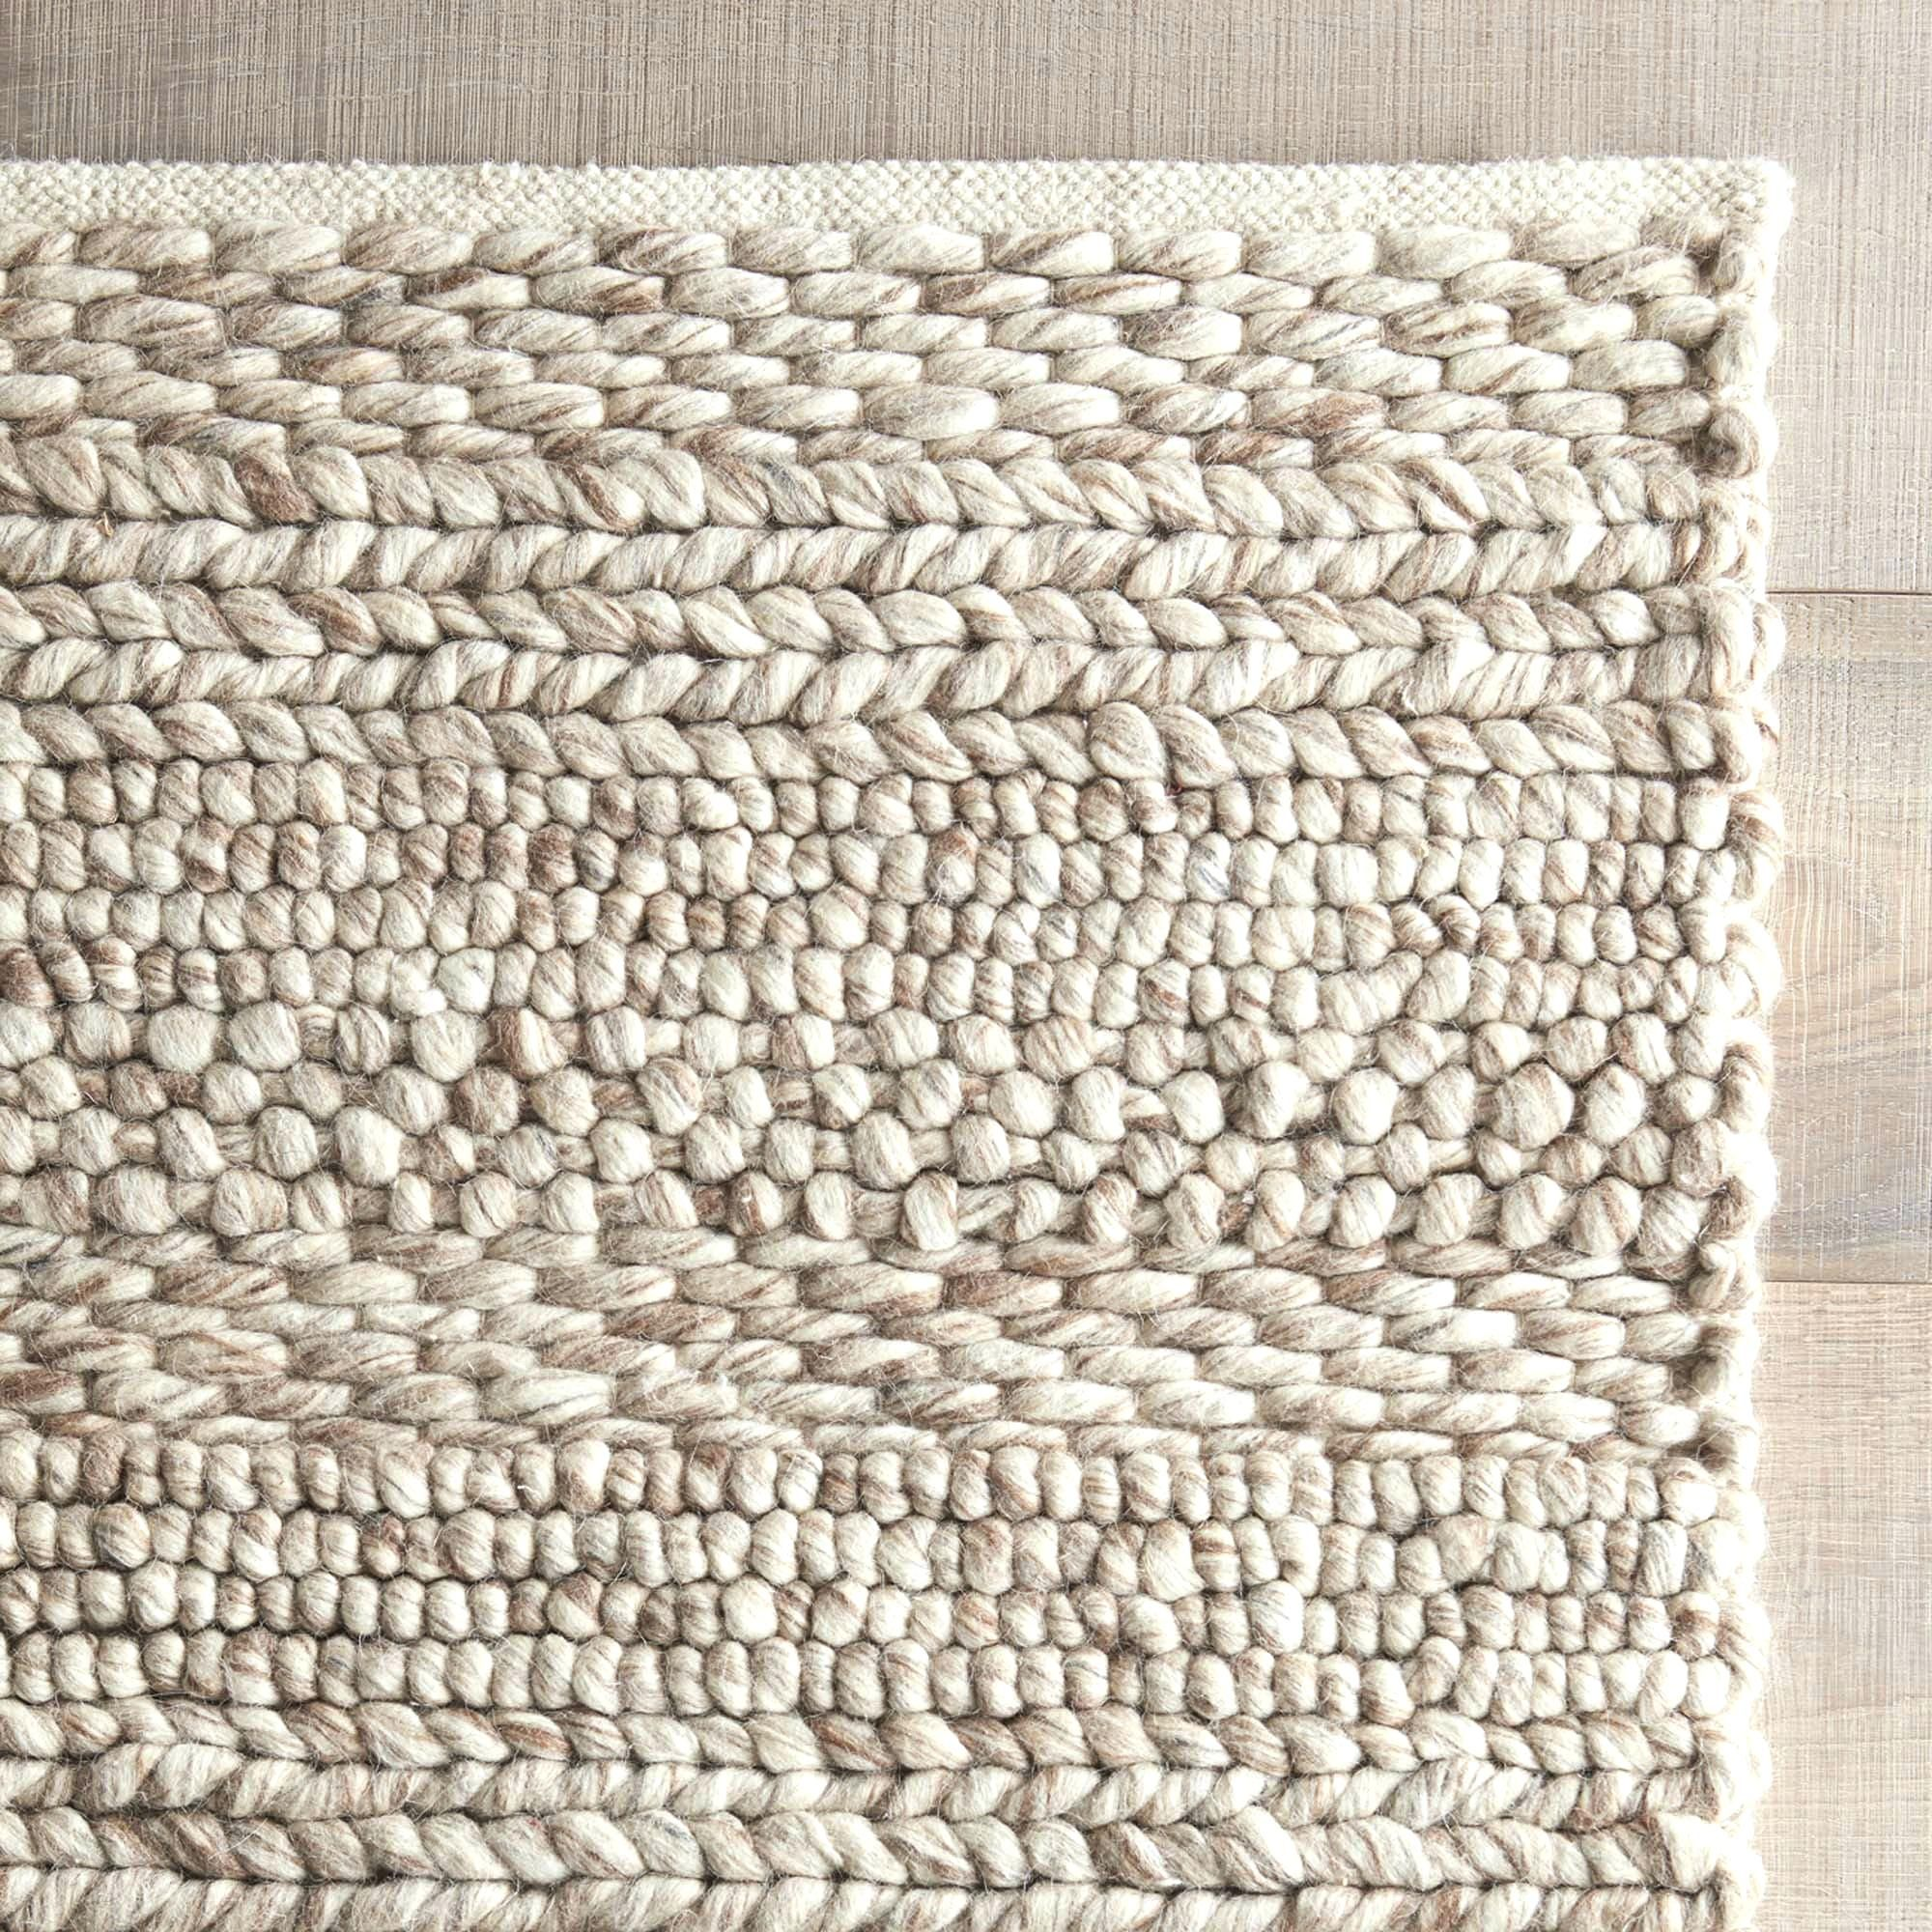 Natural Area Rug Rugs Coupon Code 2015 Made In Usa Sisal Natural Area Rugs Sisal Area Rugs Area Rugs